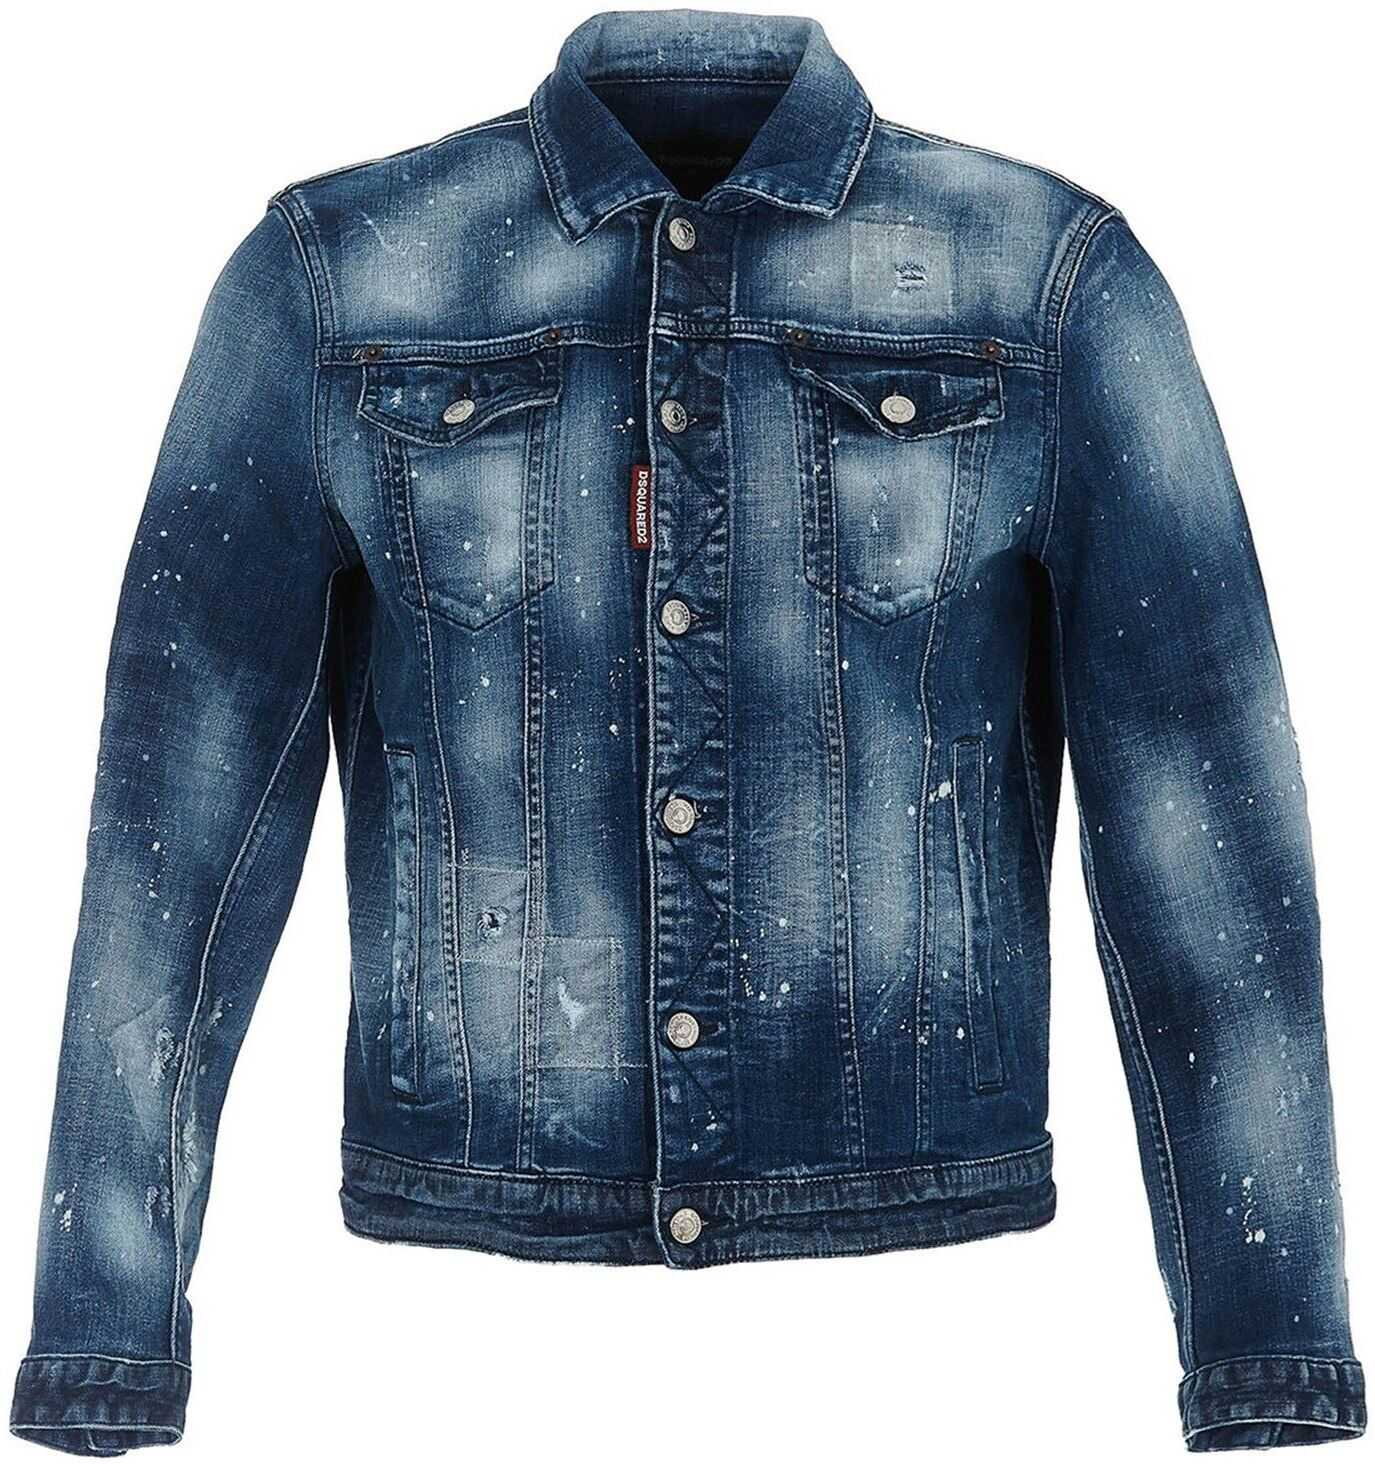 DSQUARED2 Dan Denim Jacketin Blue Blue imagine